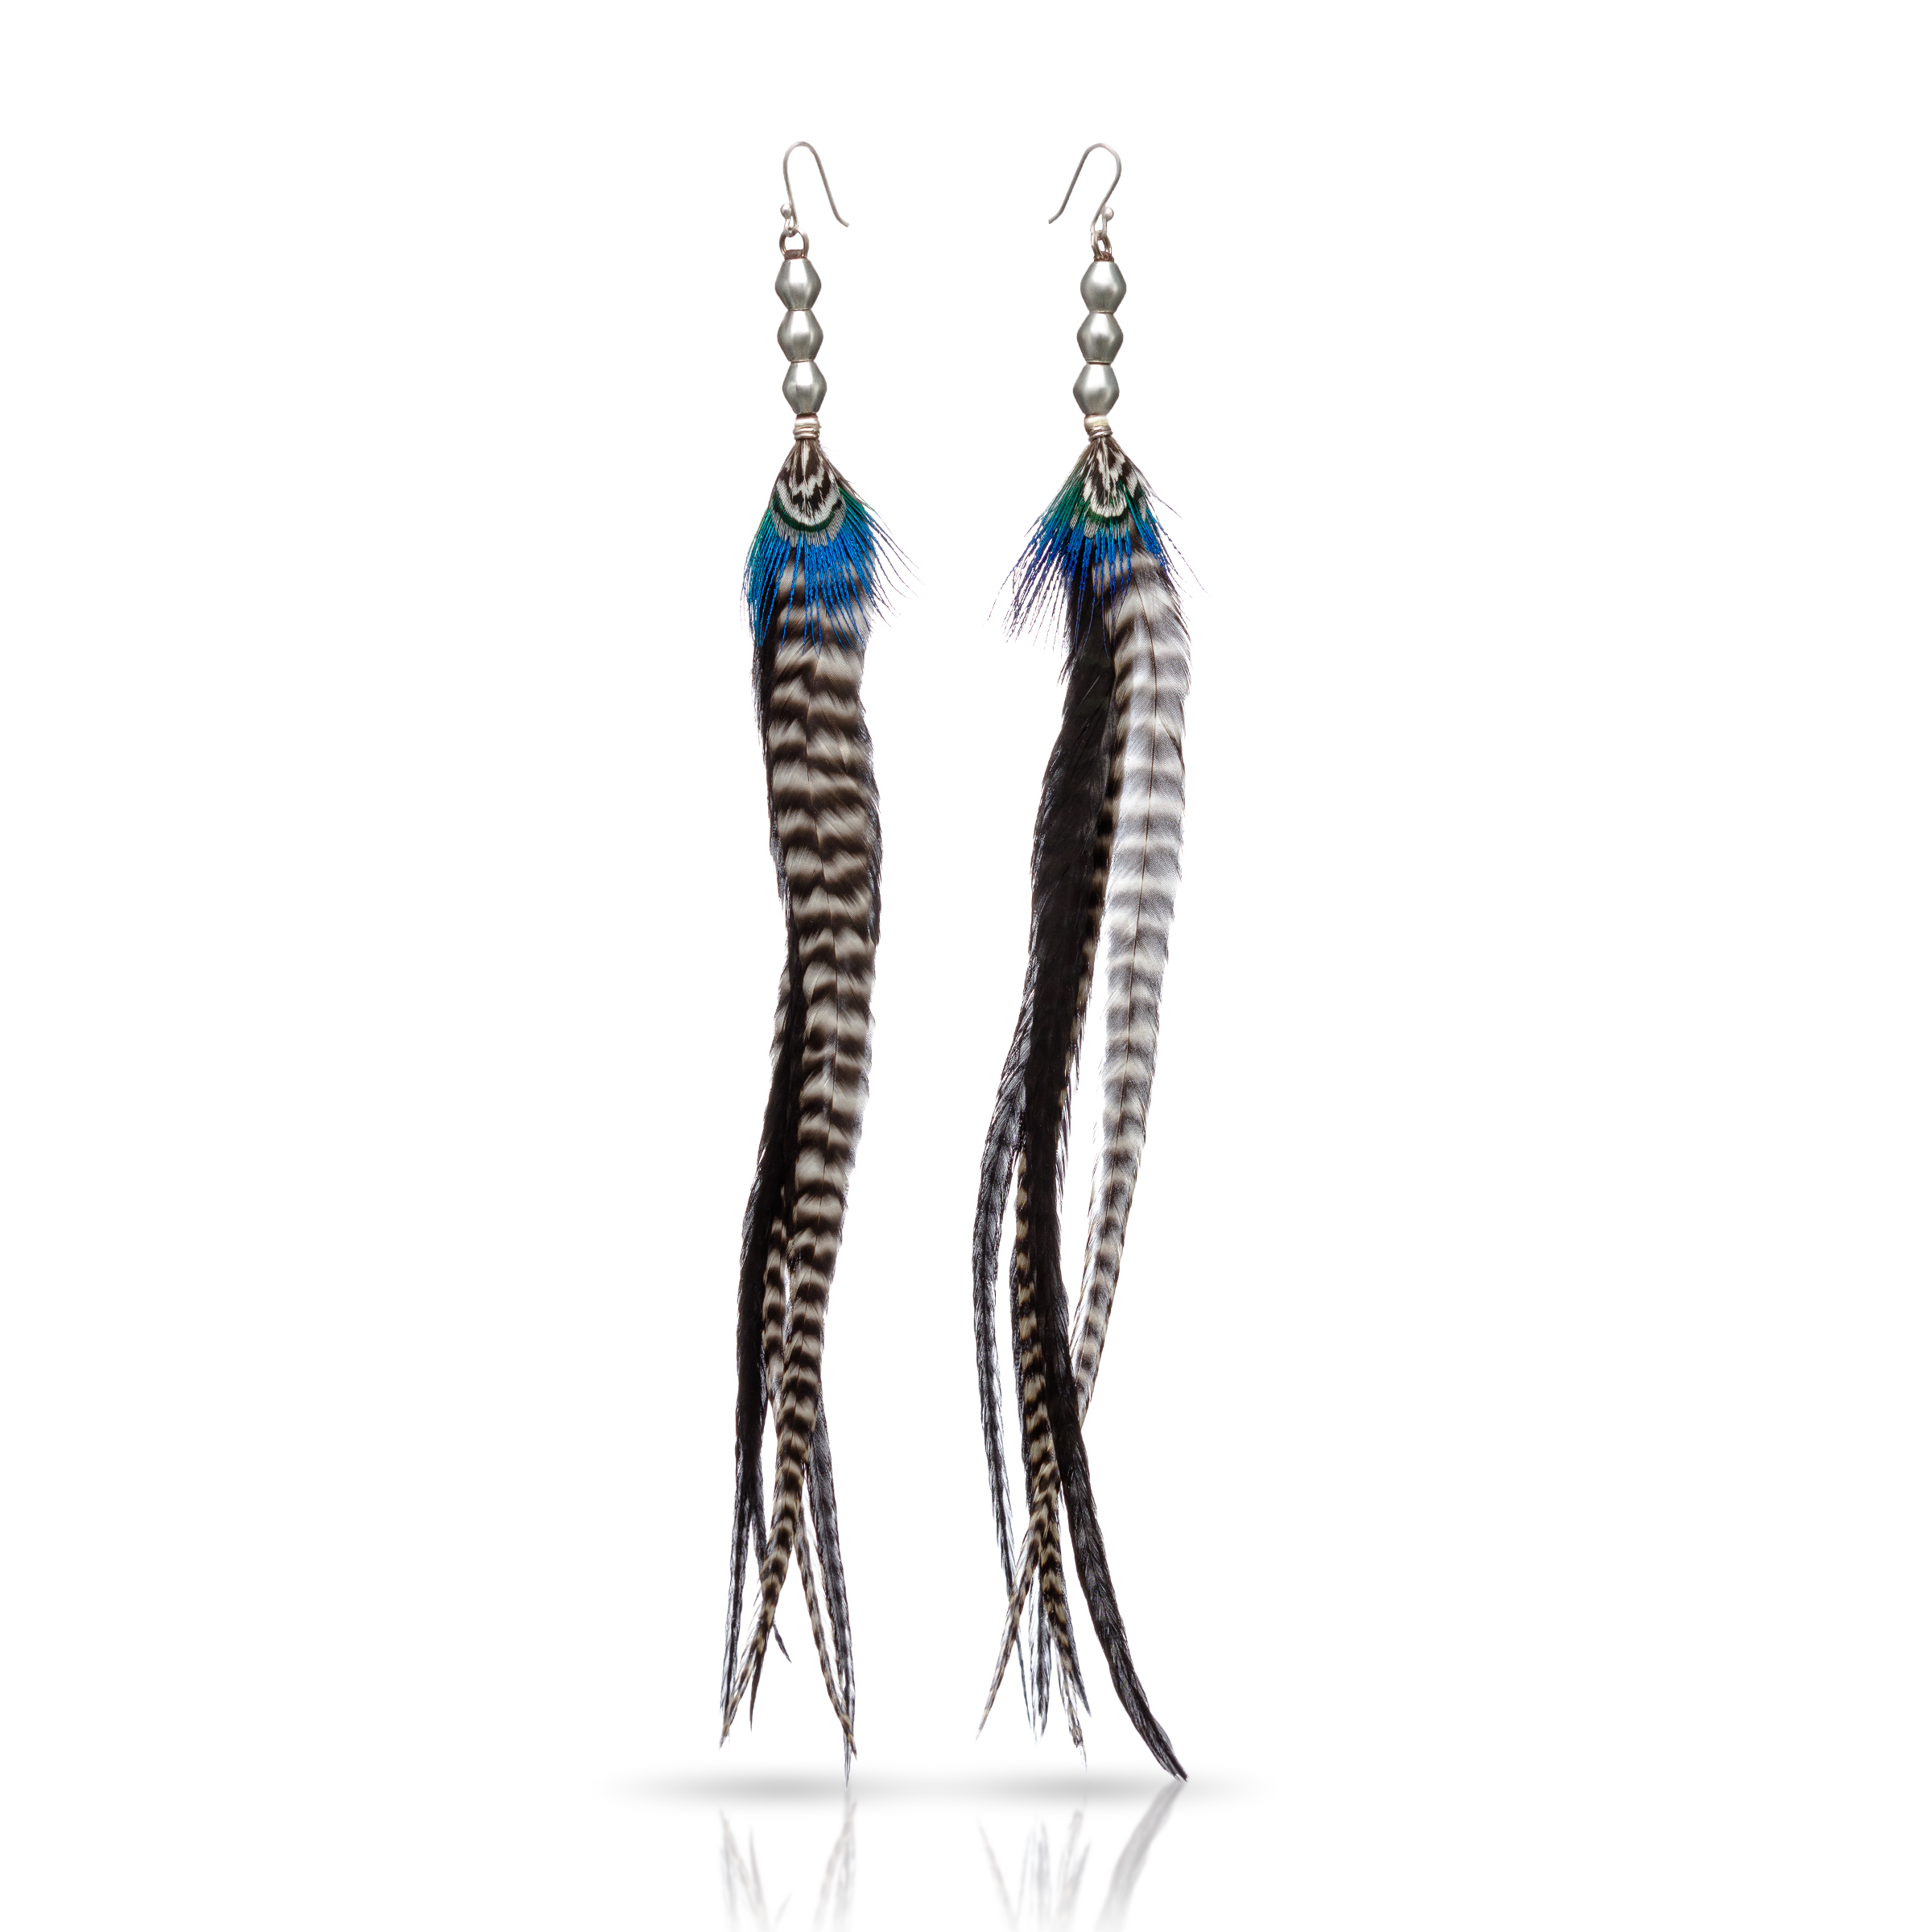 Earrings product photography